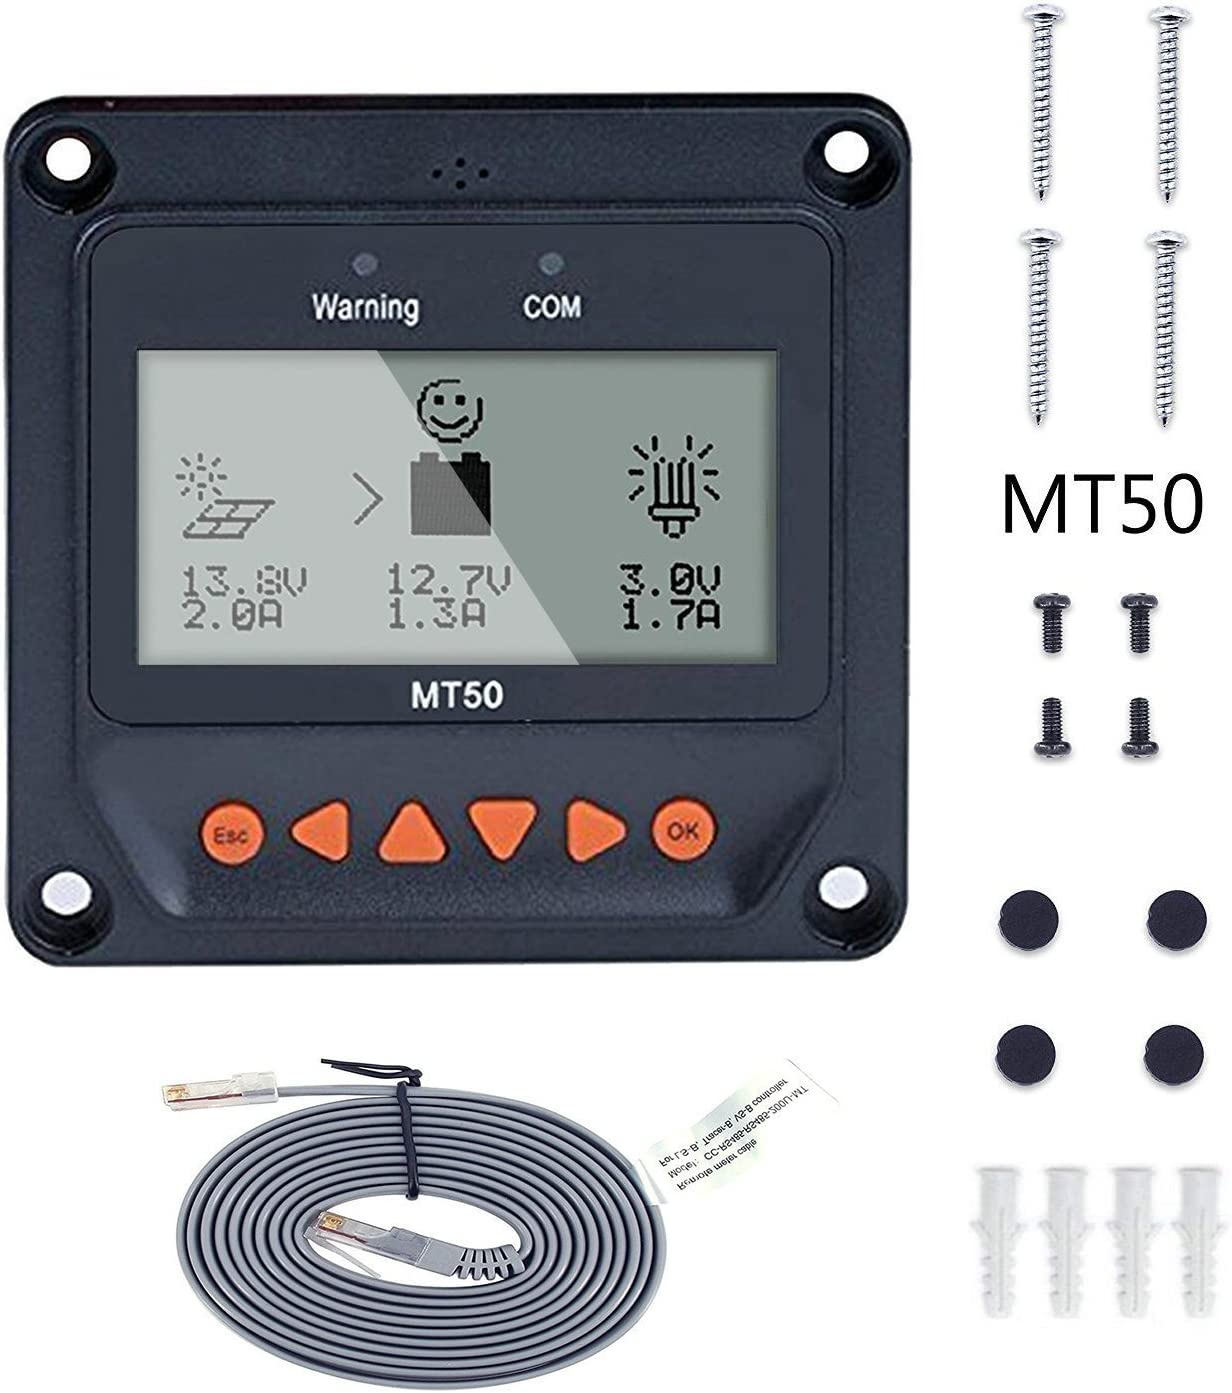 EPEVER MT50 LCD Display Remote Meter for TracerAN TRIRON N Tracer-BN VS LS-B Series mppt pwm Solar Controller